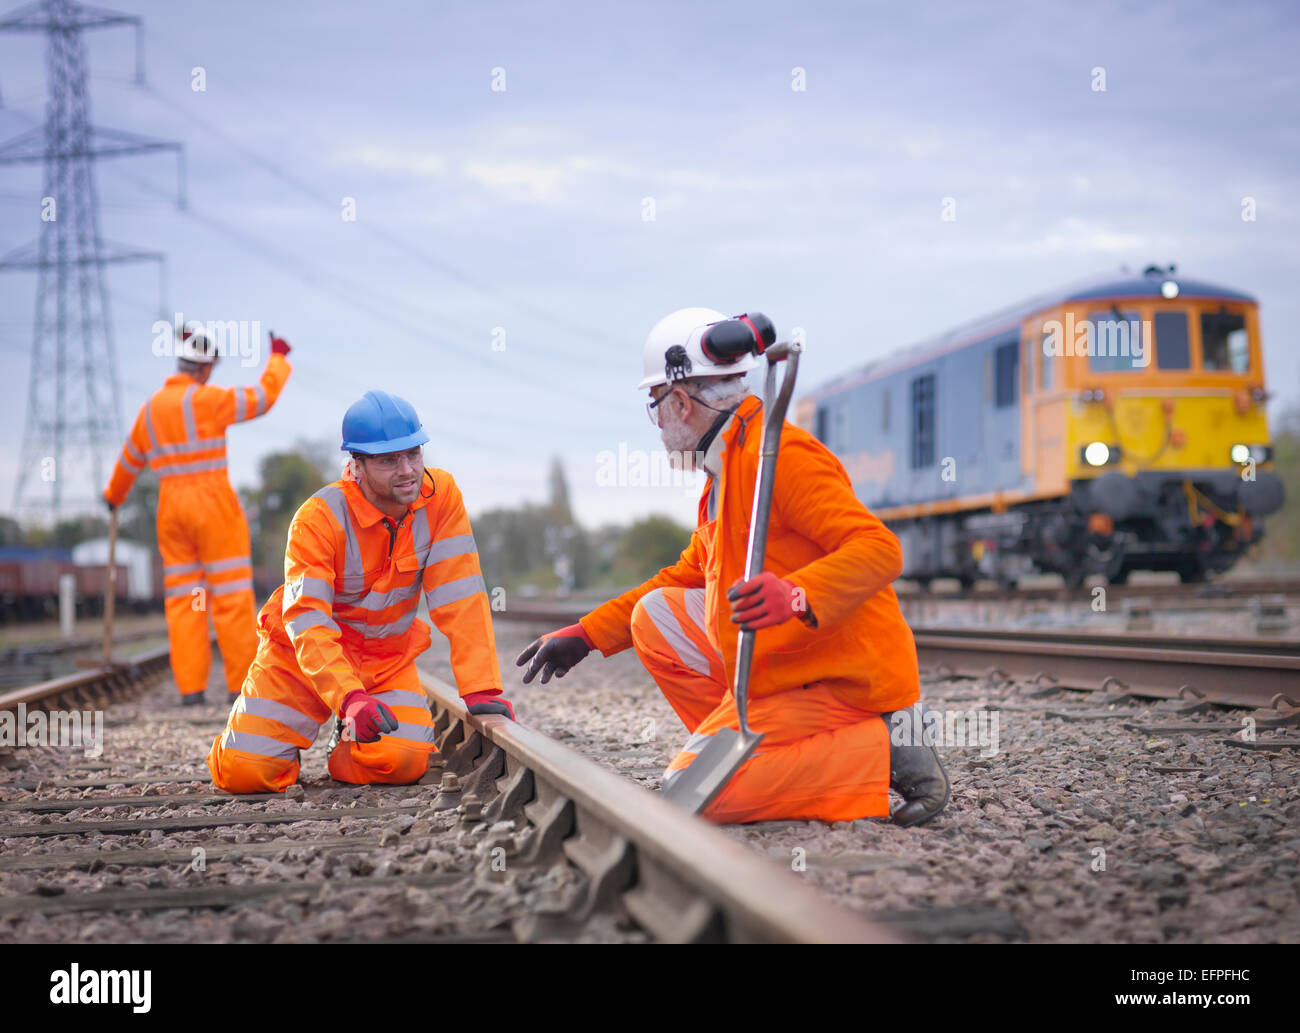 Apprentice railway worker instructed by engineer on railway - Stock Image